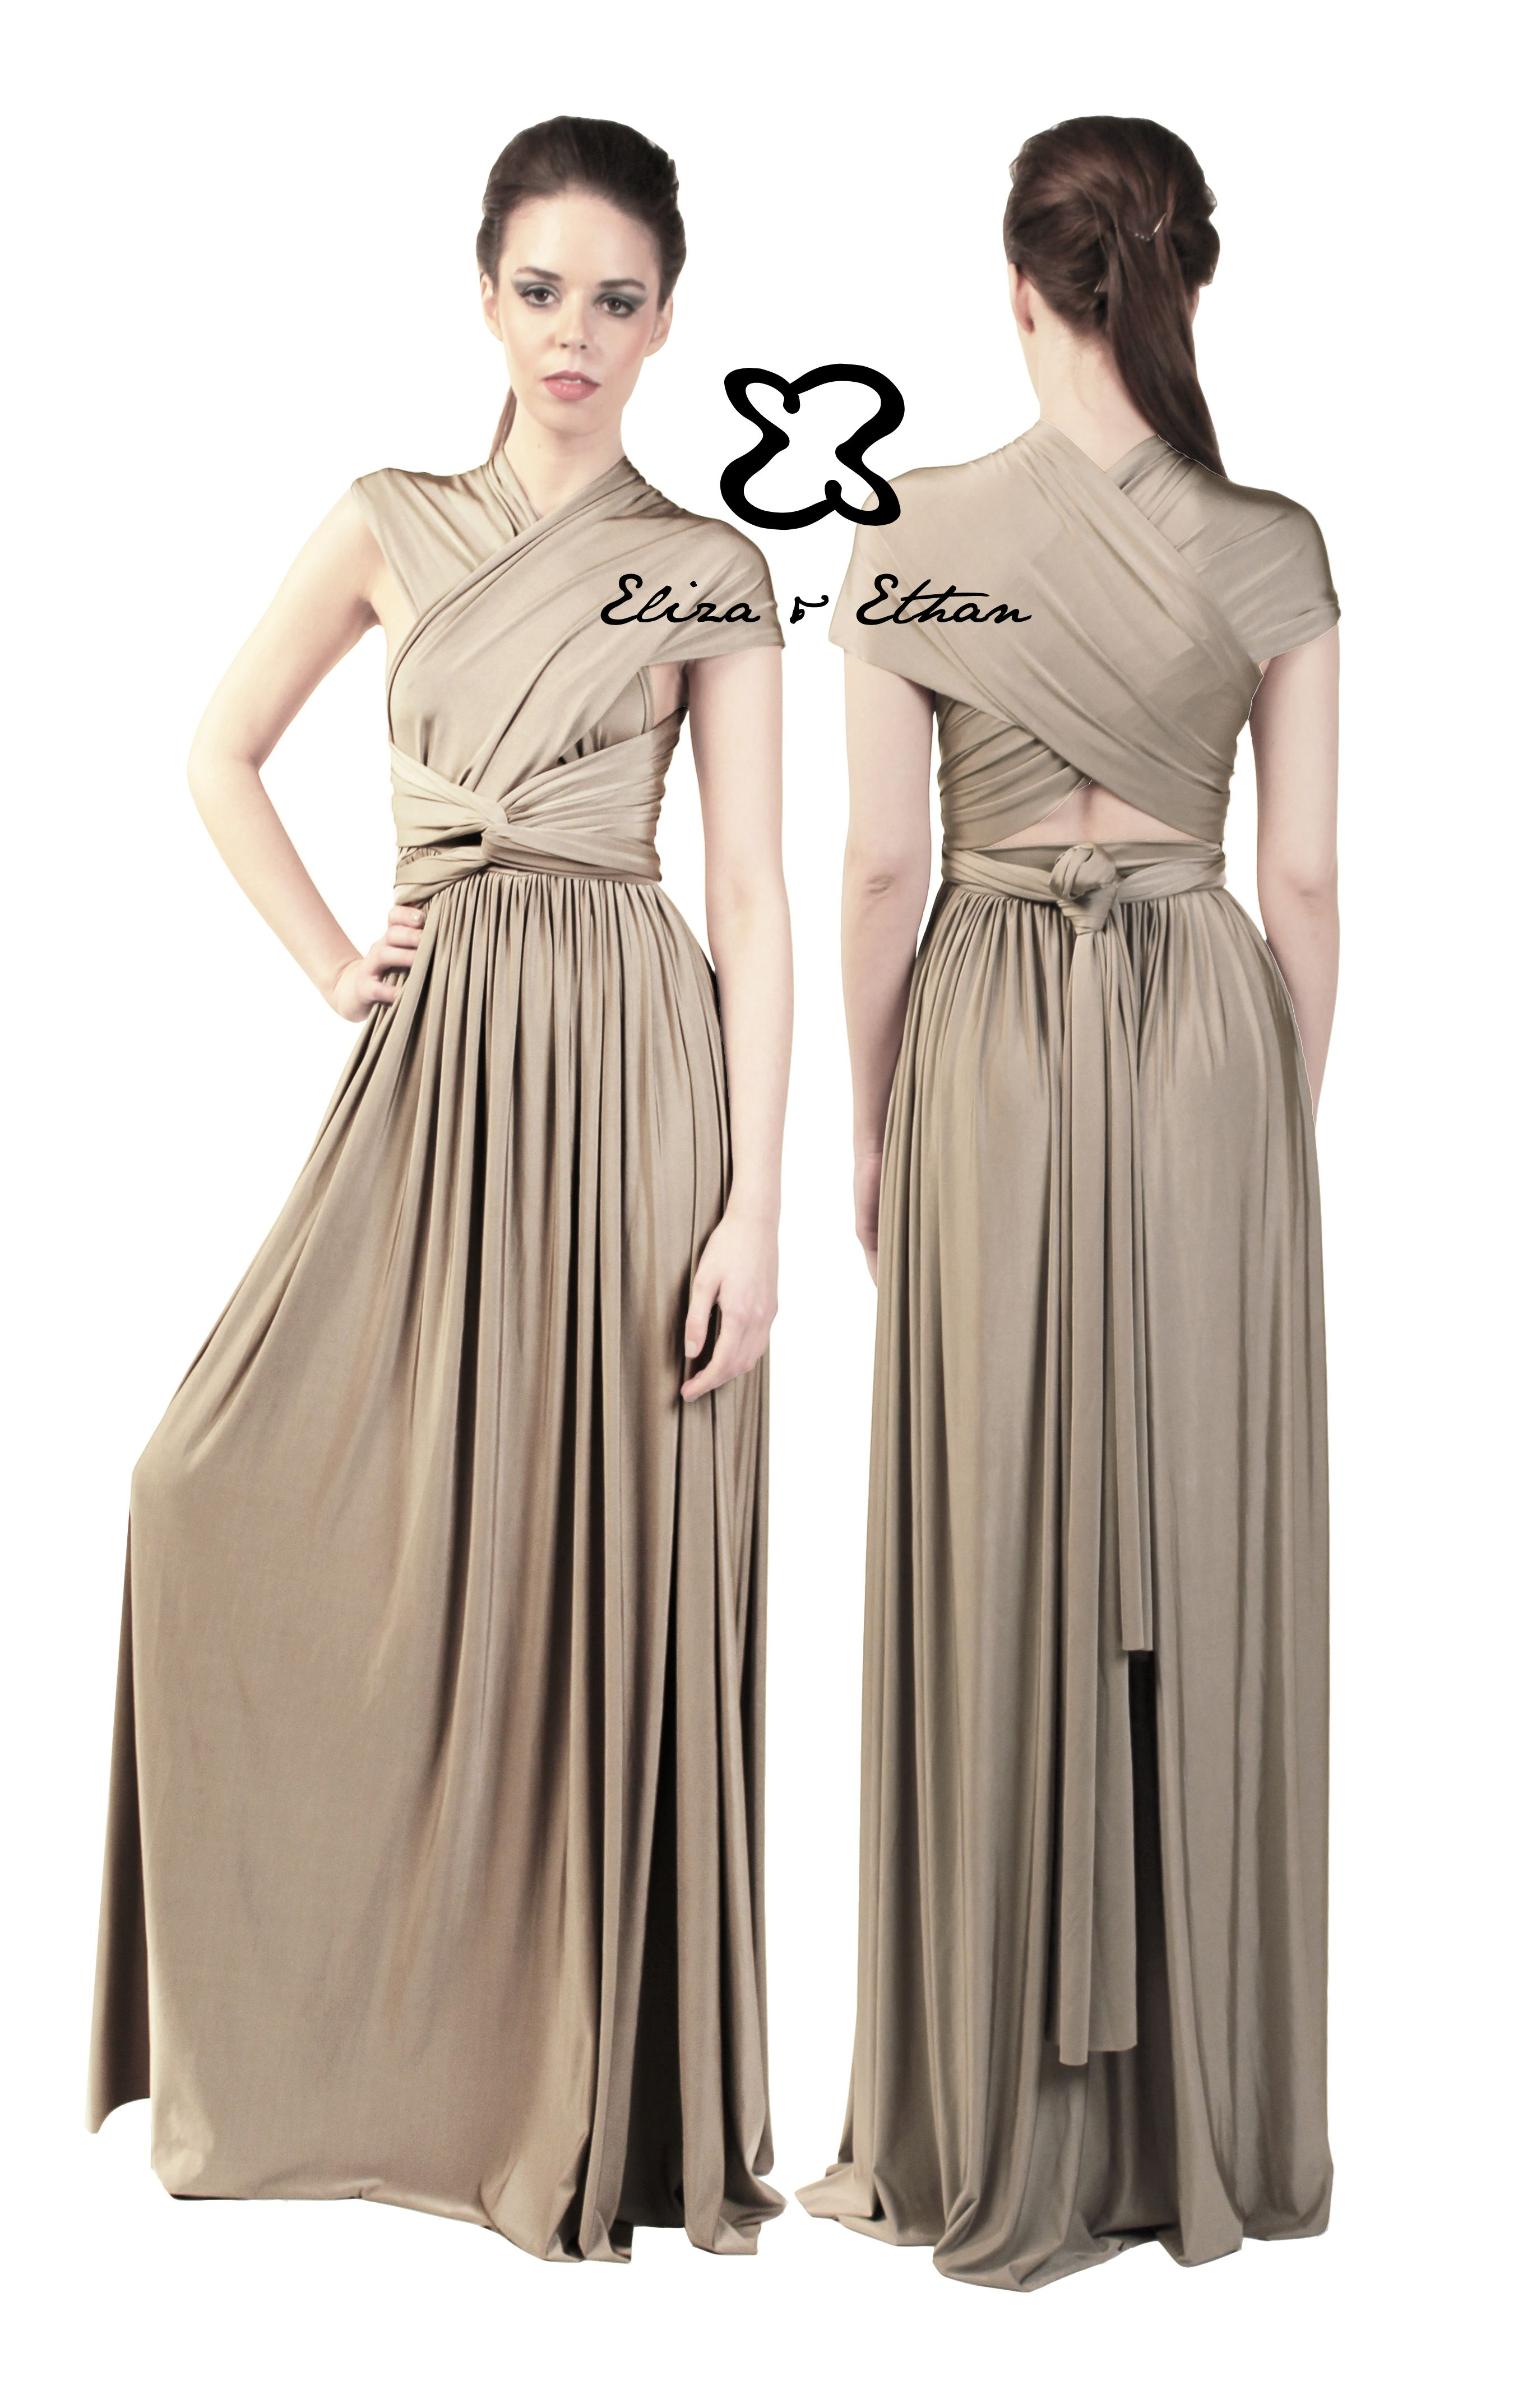 Eliza and ethan multiway infinity bridesmaids dresses brides and grooms in poulton 01253 932940 eliza and ethan multiway infinity bridesmaids dresses onesize maxi multiwrap dress color champagne ombrellifo Images